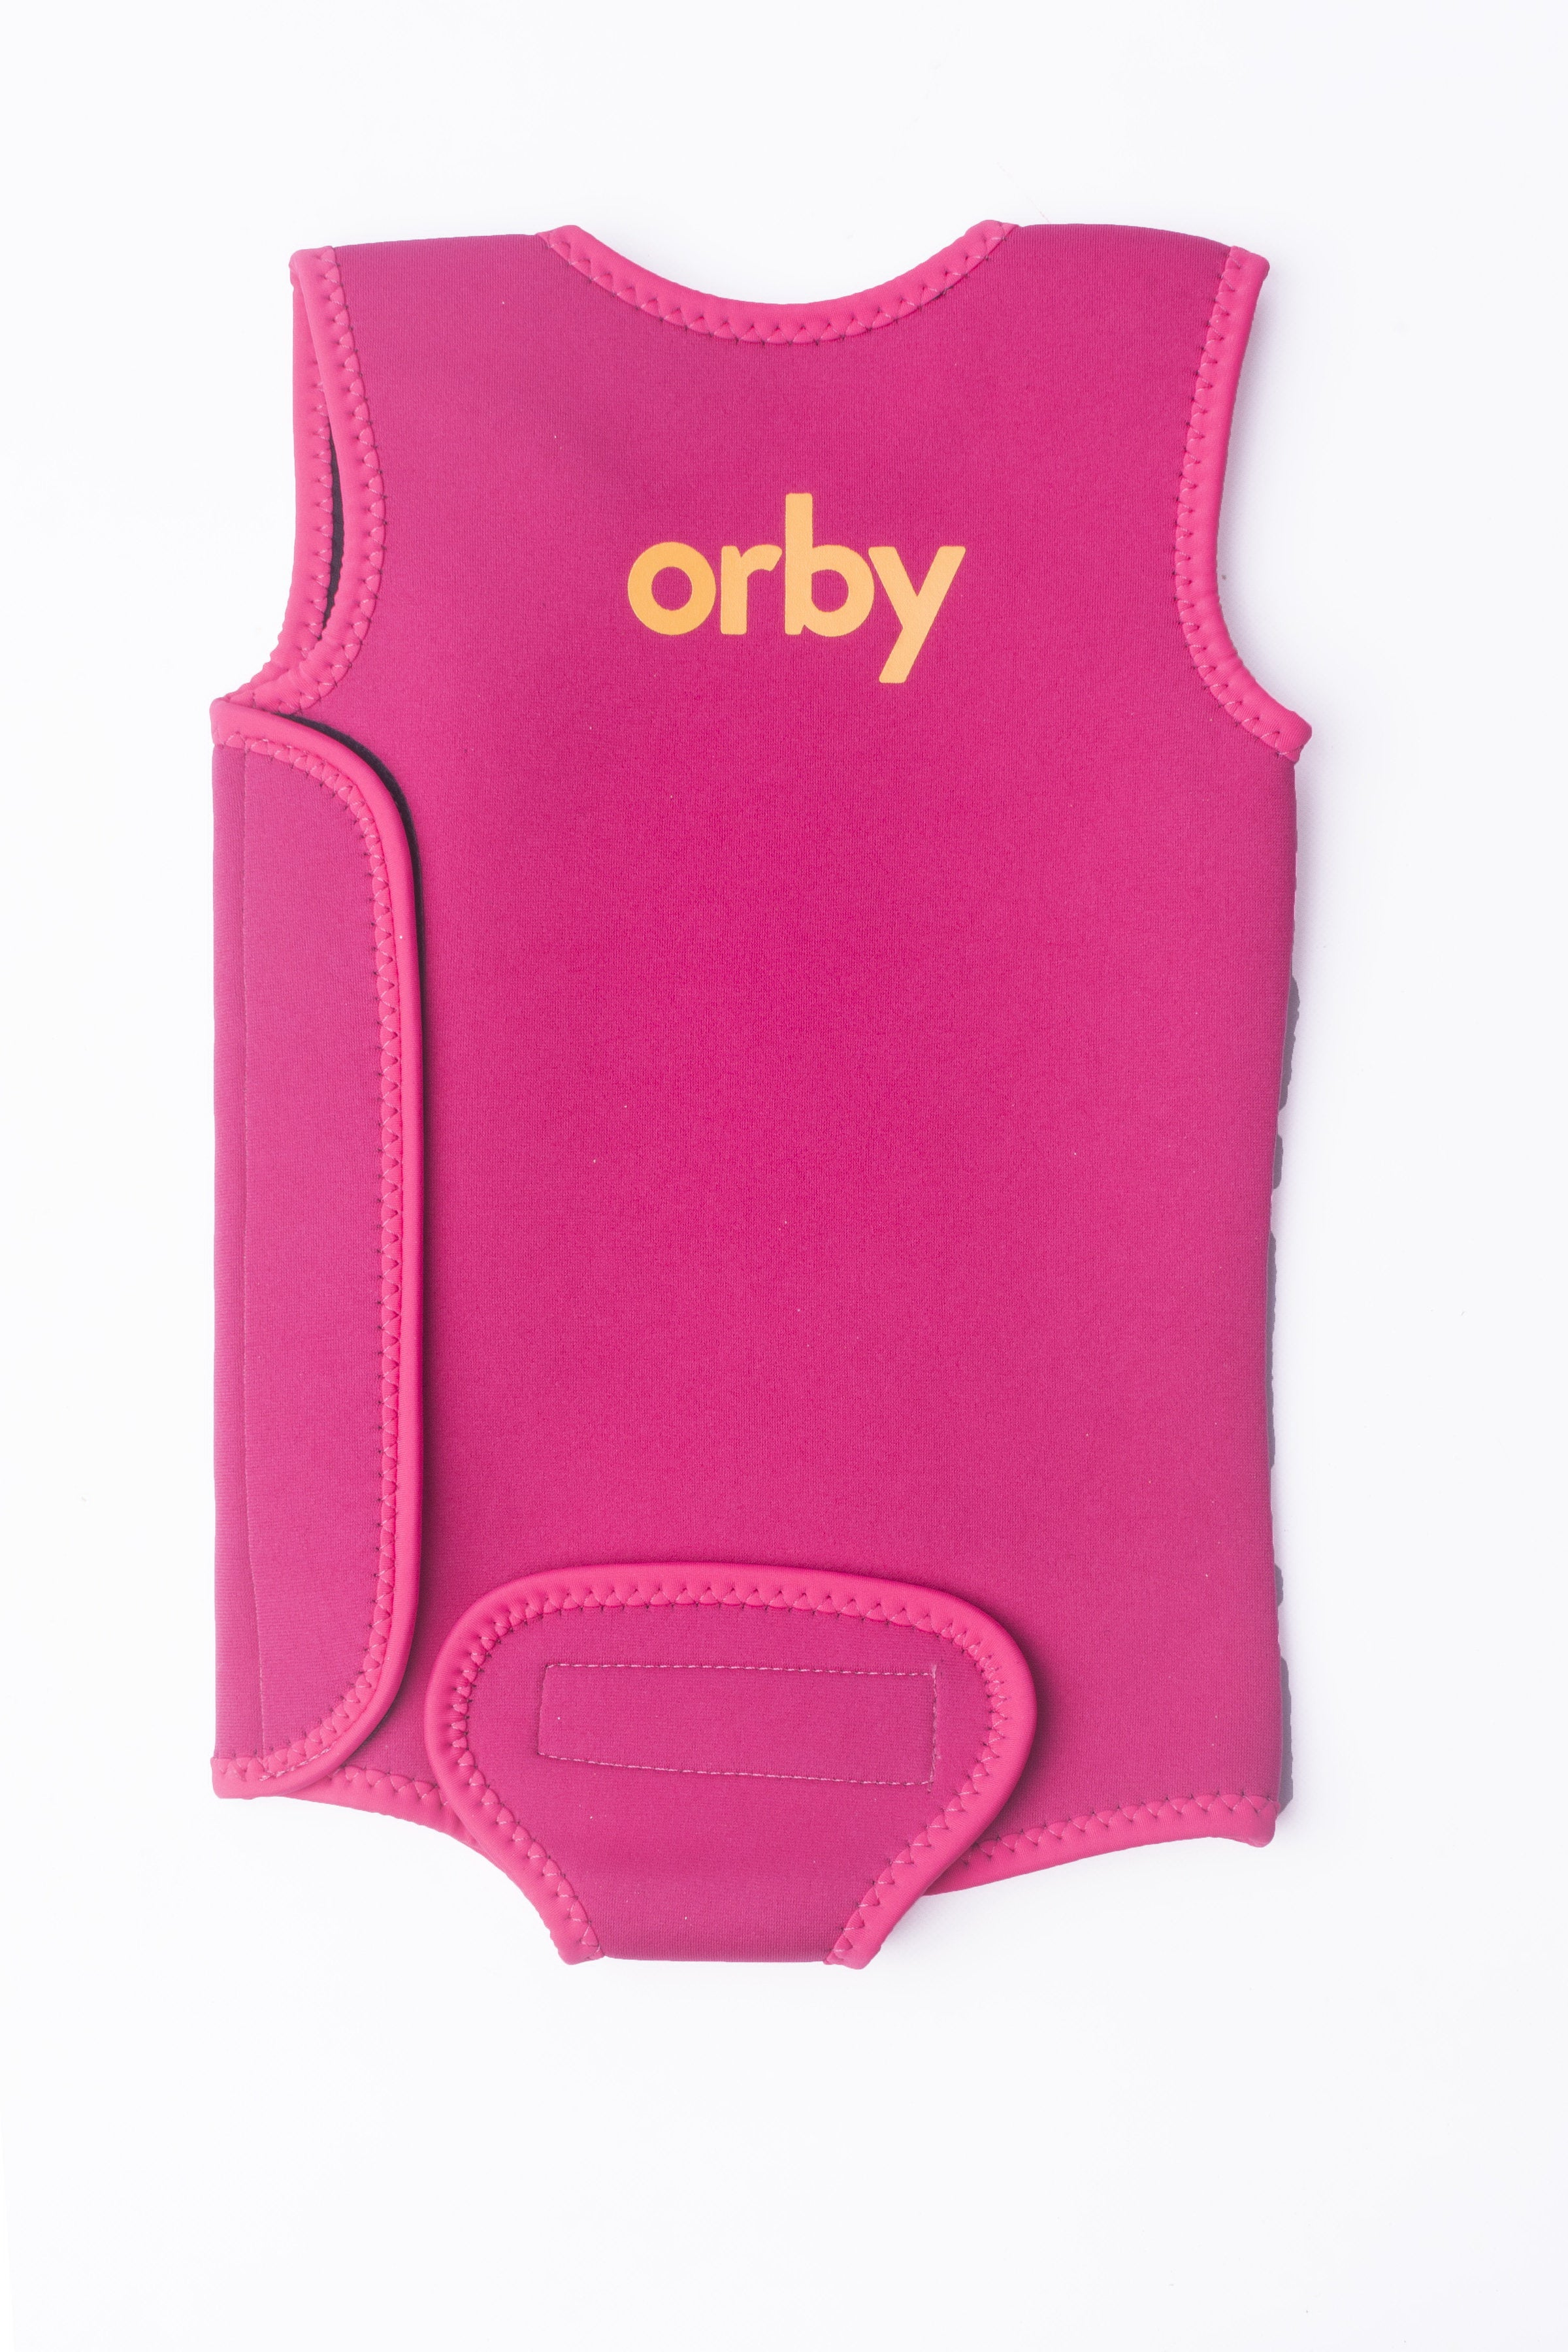 Orby Wrap - Pink